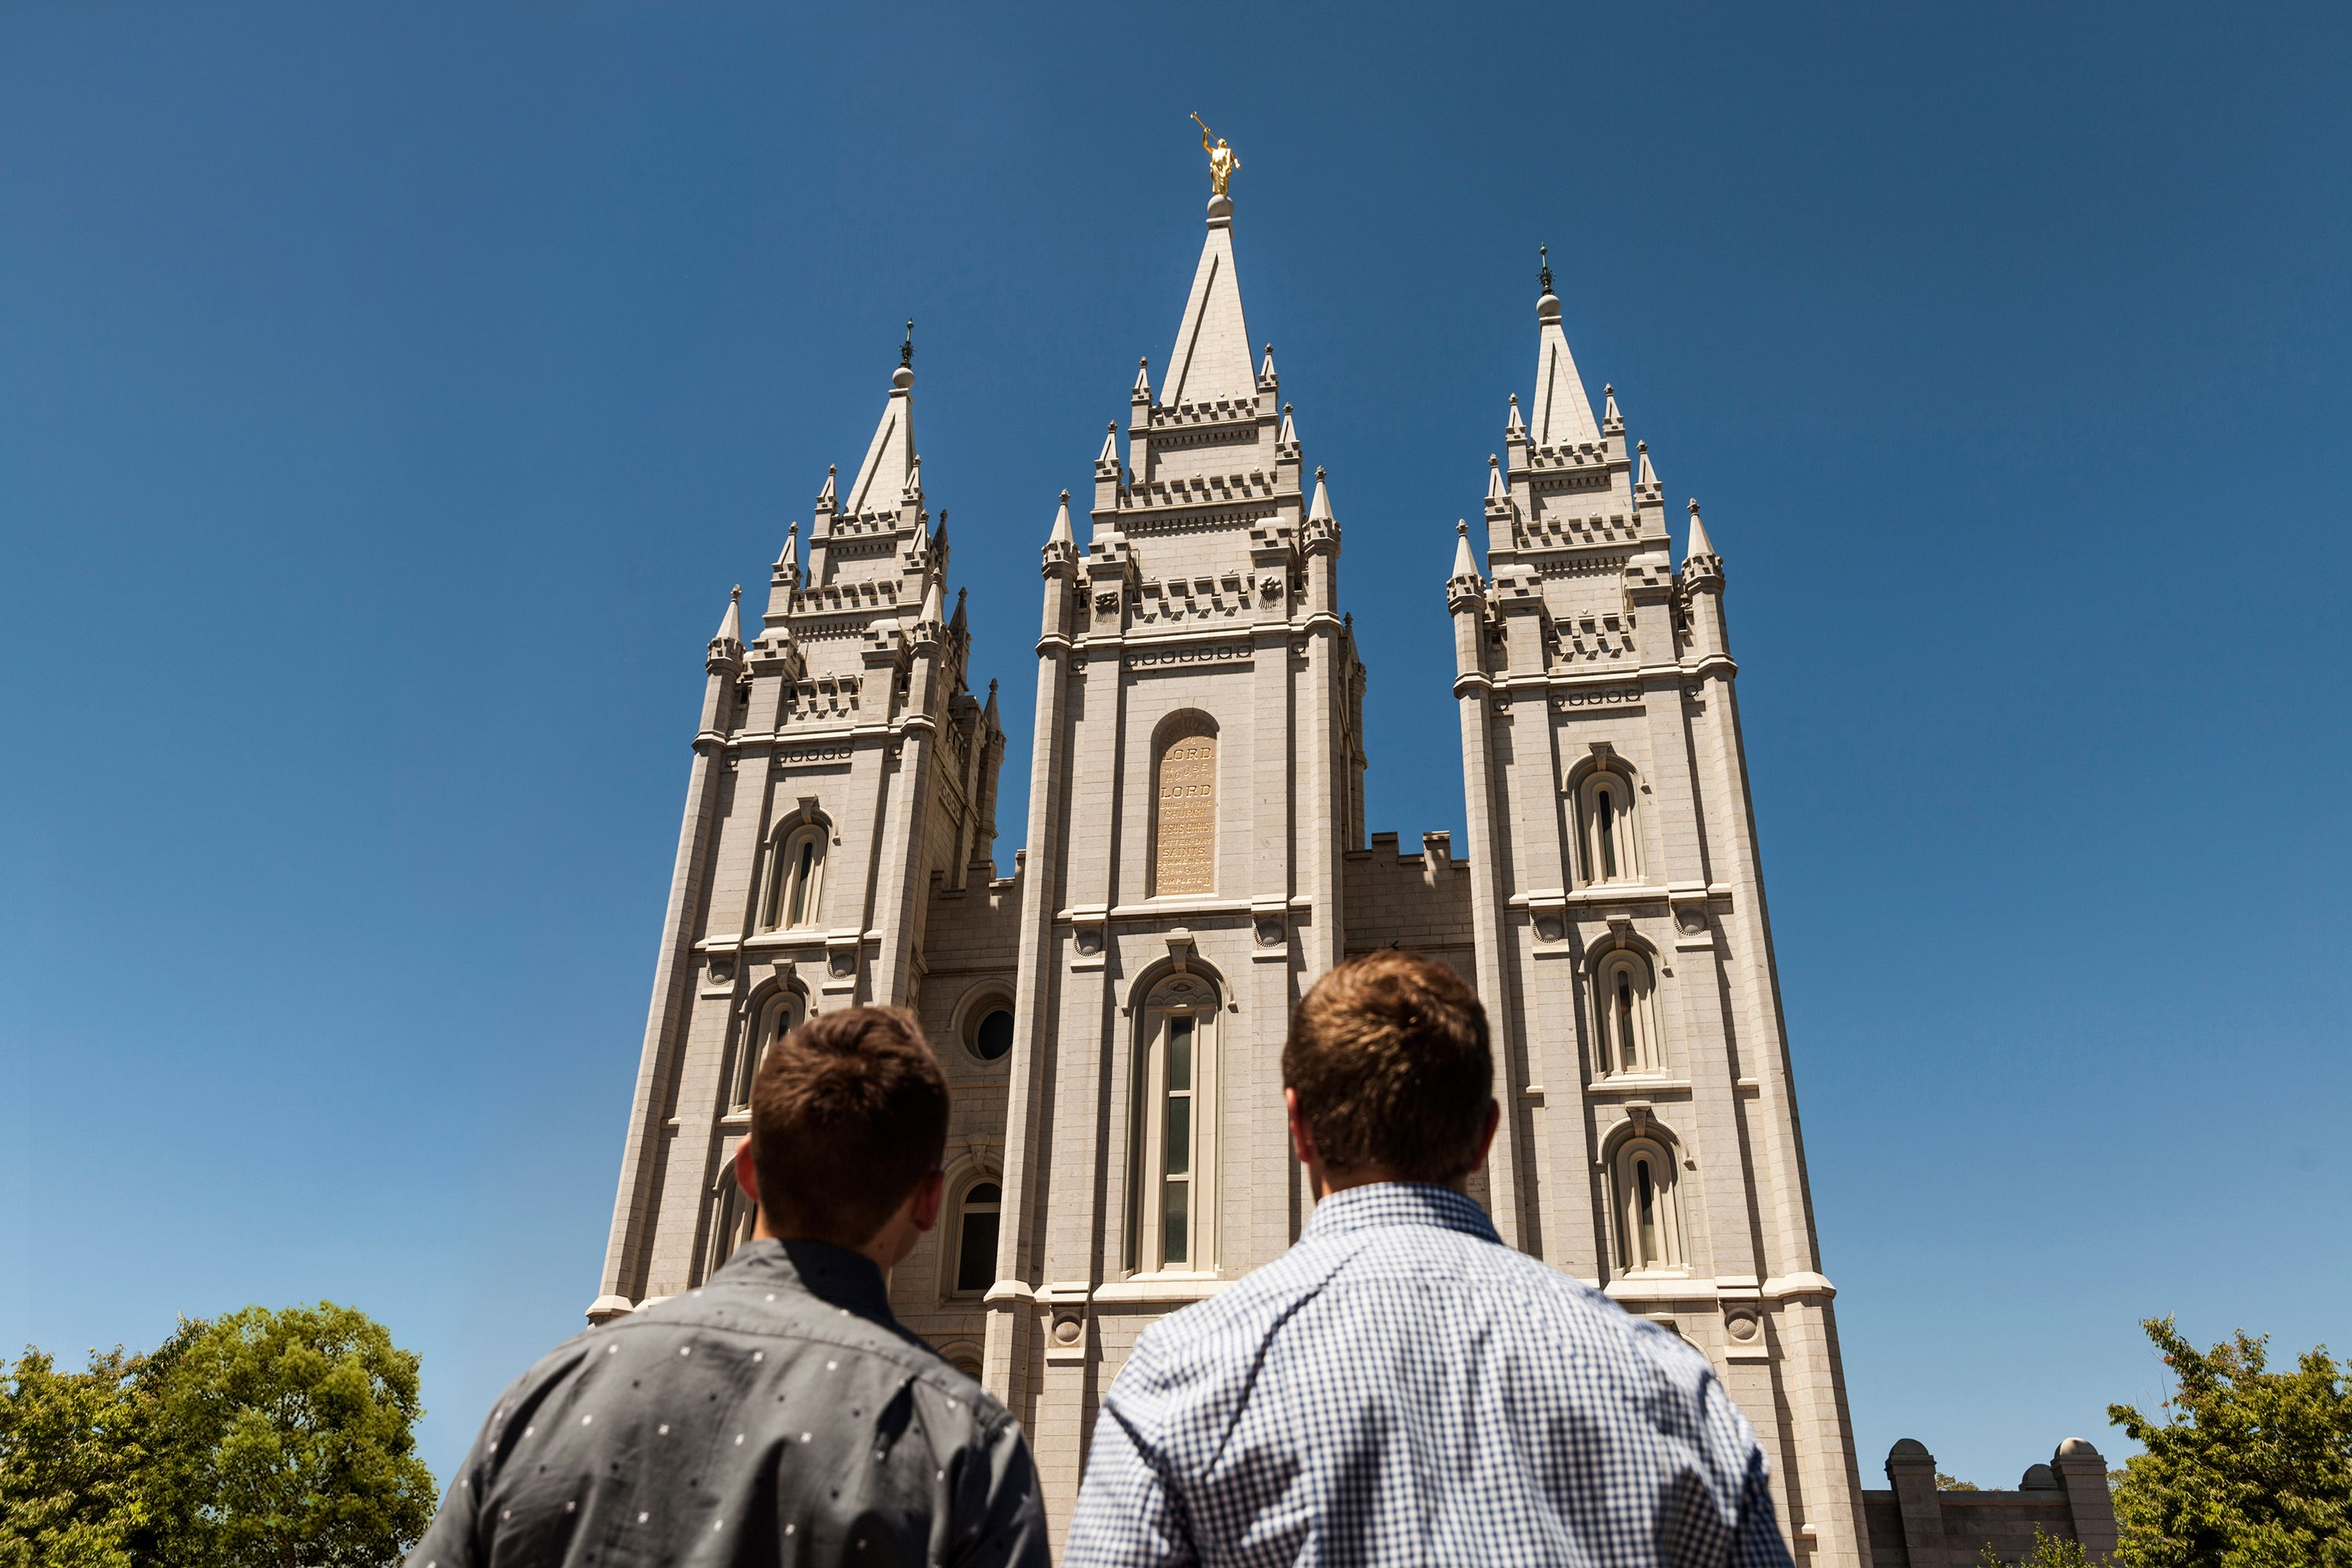 Church of jesus christ of latter day saints hookup